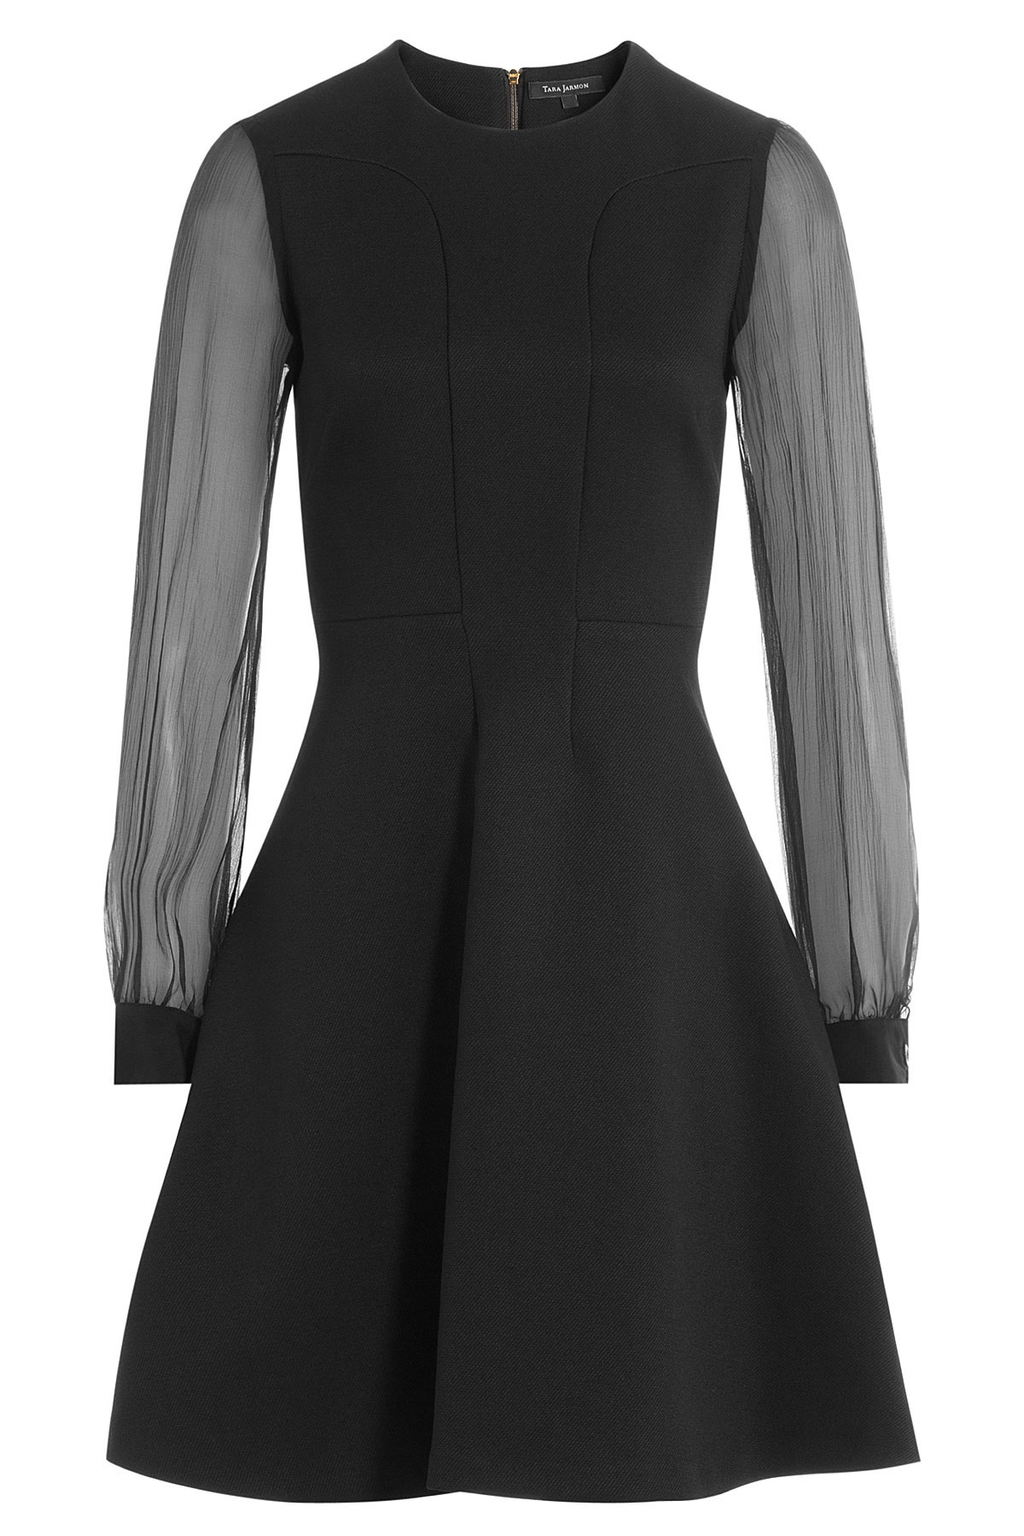 Dress With Sheer Longsleeves - length: mid thigh; pattern: plain; predominant colour: black; occasions: evening; fit: fitted at waist & bust; style: fit & flare; fibres: polyester/polyamide - 100%; neckline: crew; sleeve length: long sleeve; sleeve style: standard; pattern type: fabric; texture group: woven light midweight; shoulder detail: sheer at shoulder; season: a/w 2016; wardrobe: event